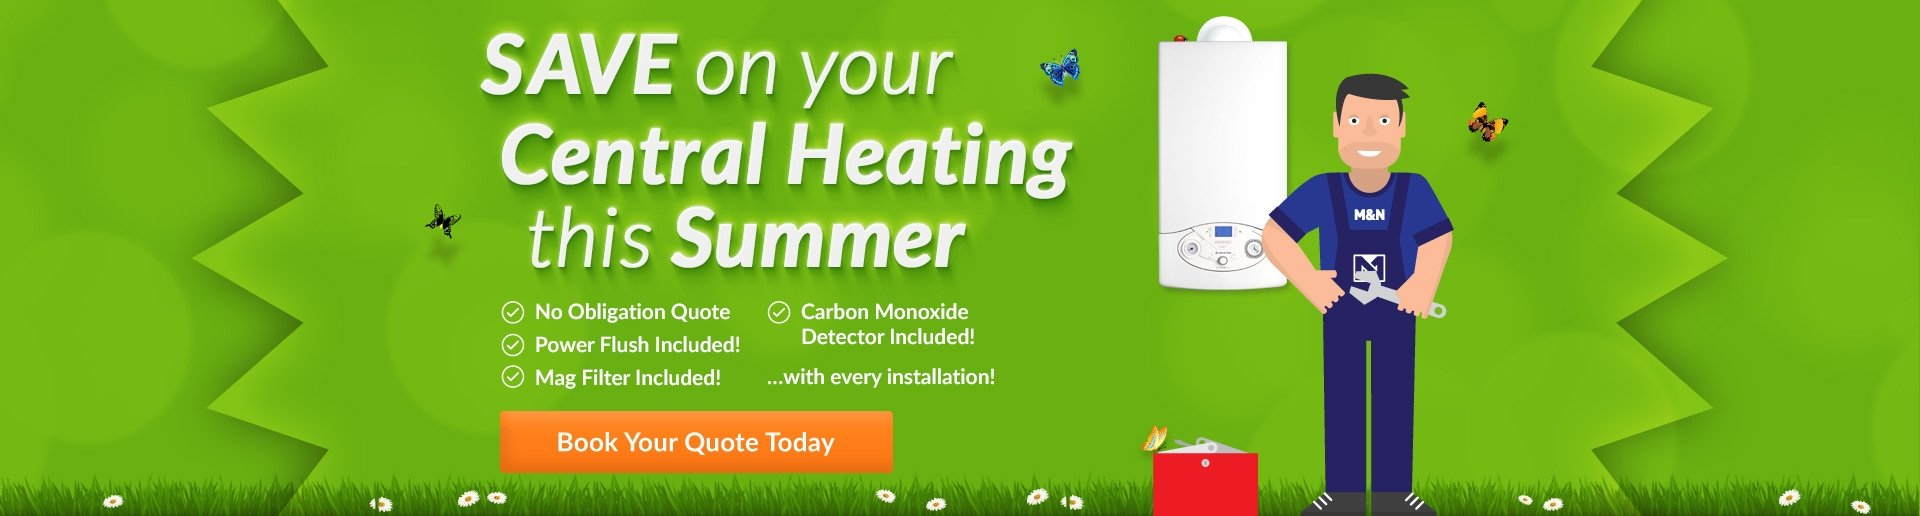 Save on Central Heating This Summer